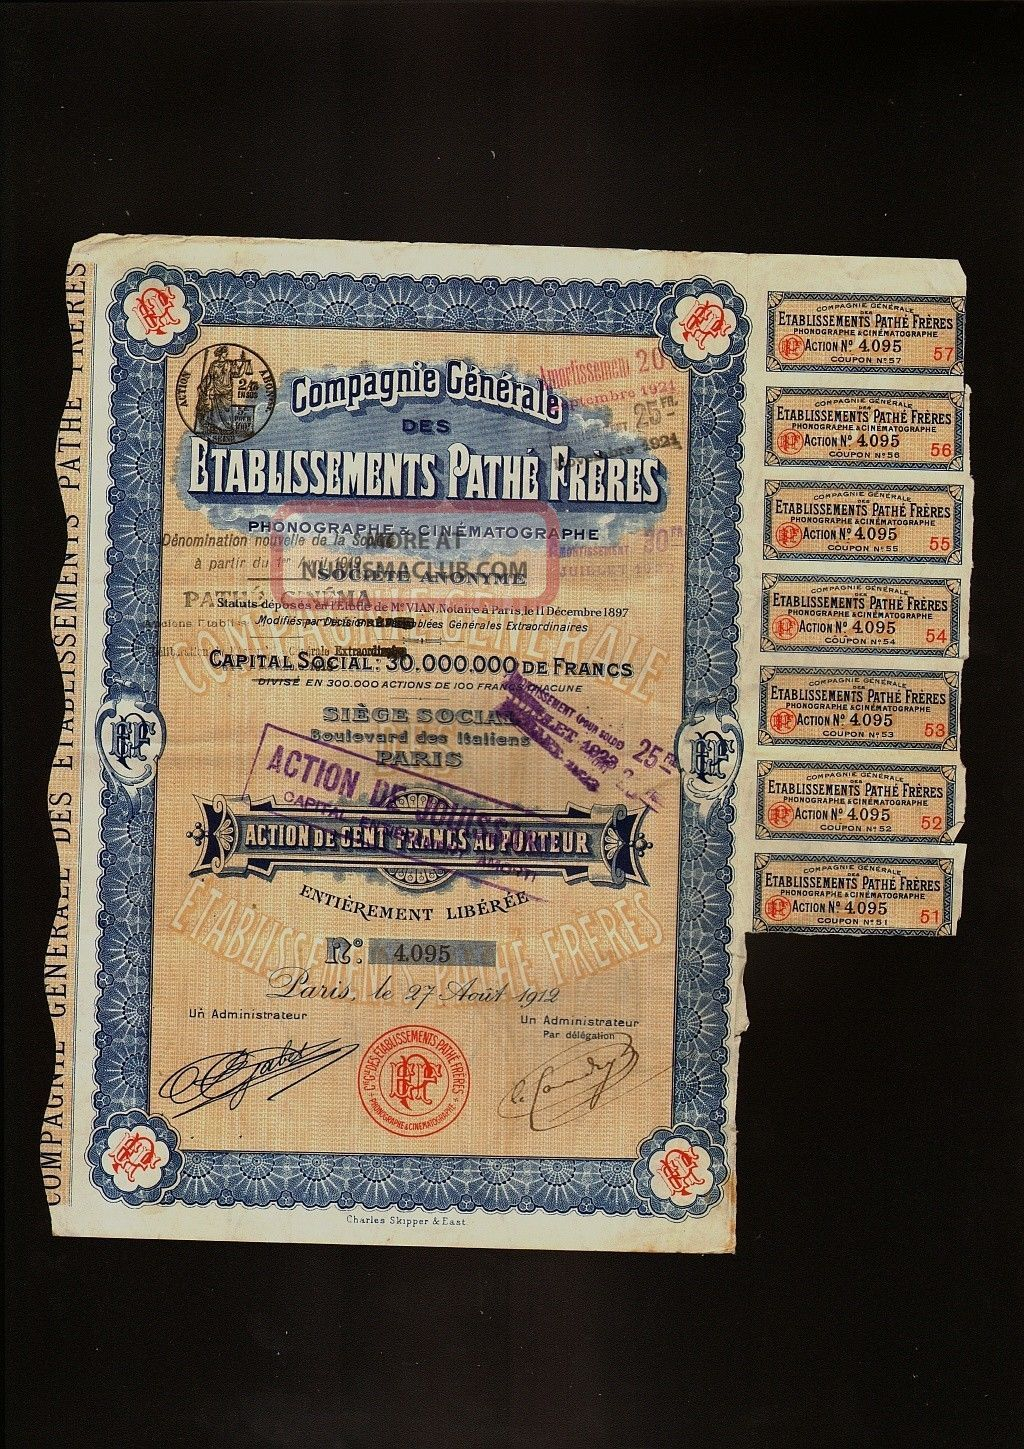 Ets Pathe Freres Phonographe & Cinematographe Paris France 1912 Cinema Movie Stocks & Bonds, Scripophily photo